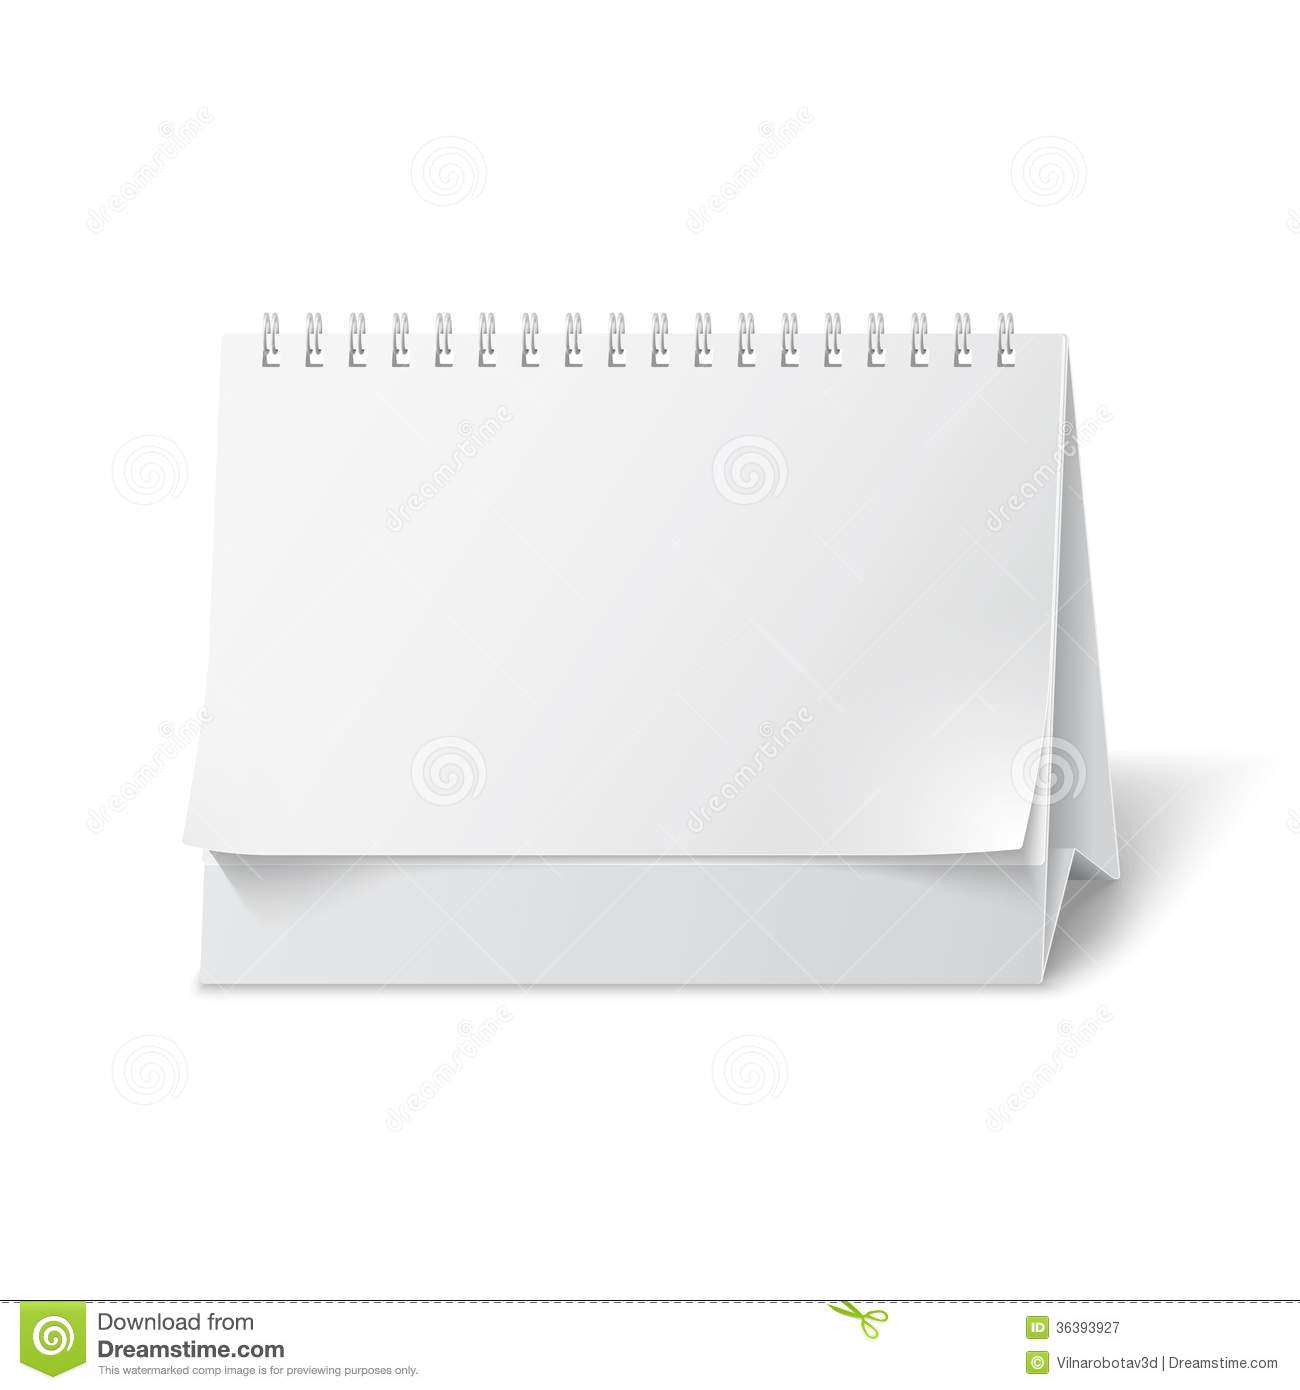 Blank Vector Calendar Template : Blank paper desk calendar royalty free stock photography